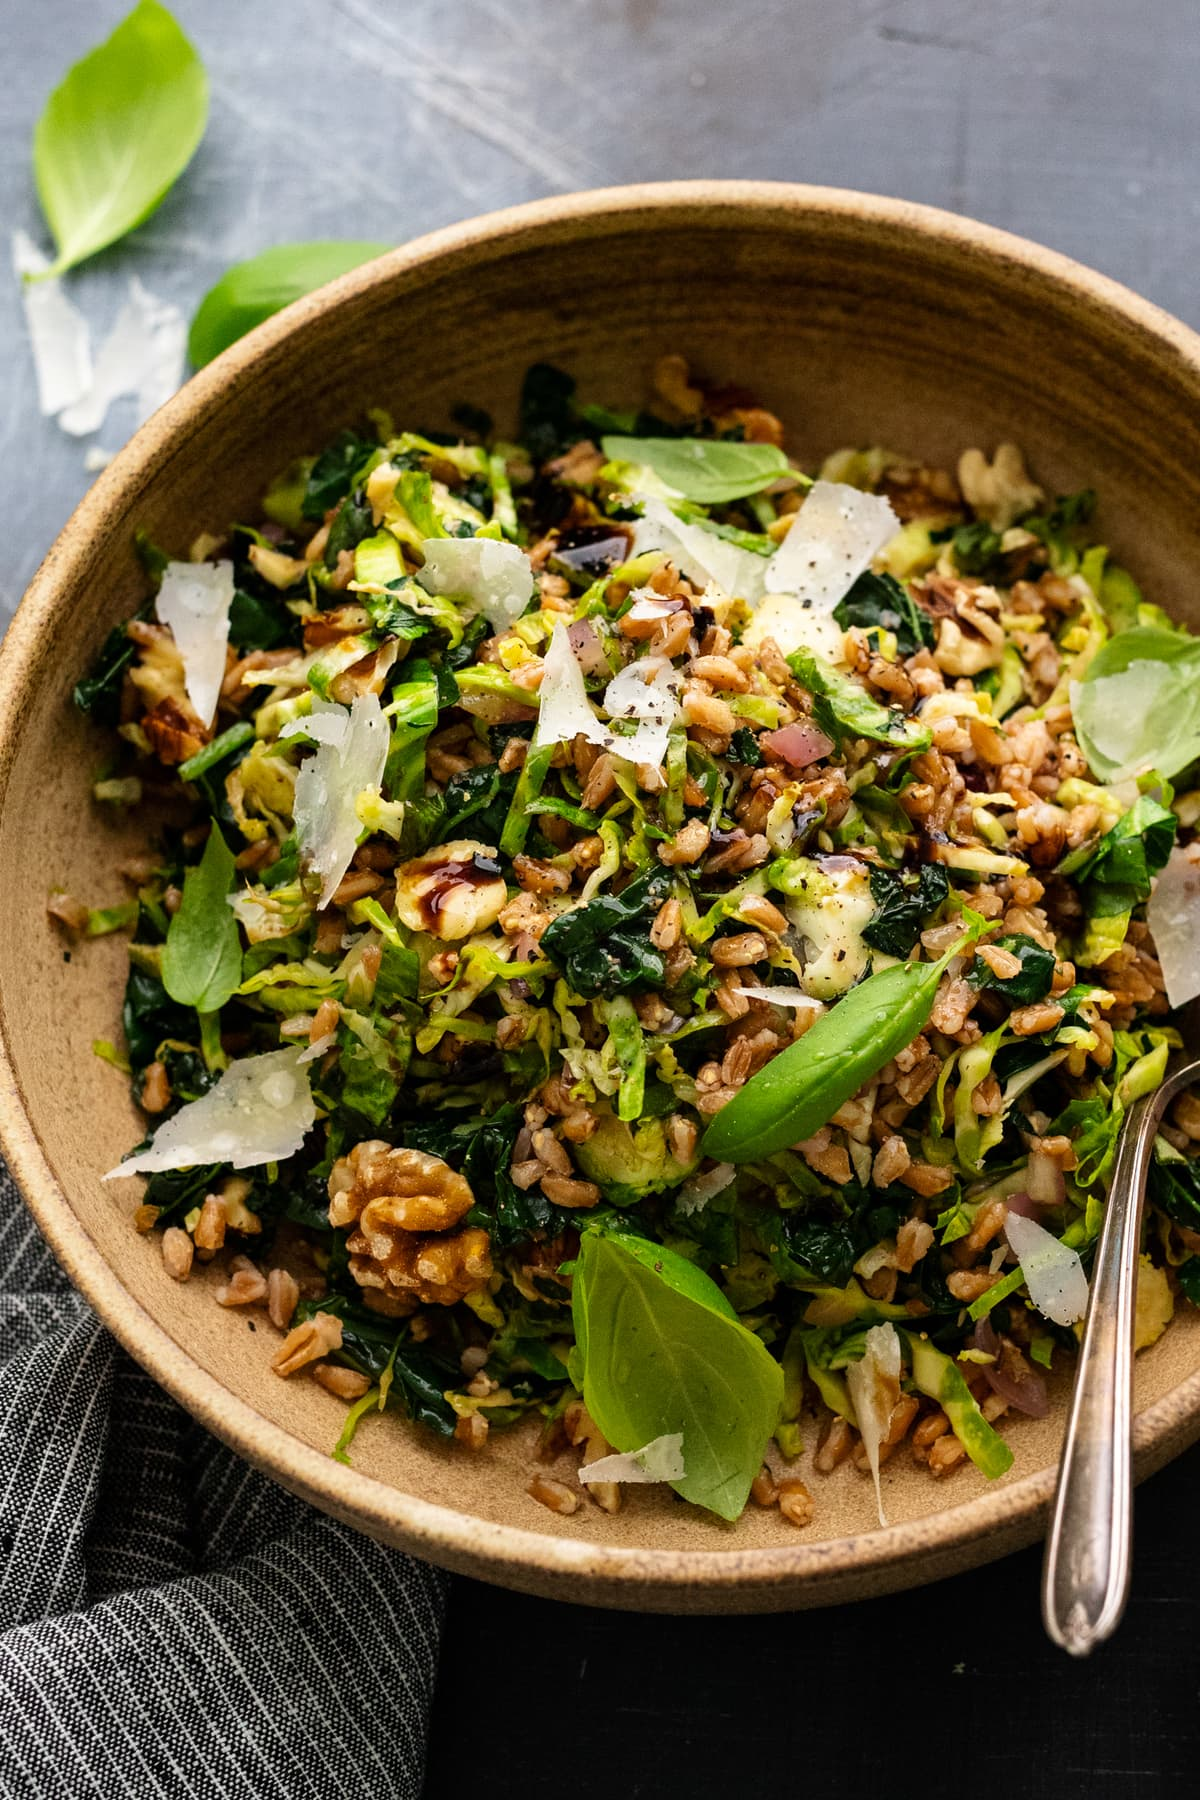 A brown ceramic bowl with kale and brussel sprout salad in it on a gray background, with herbs and nuts arranged around it.